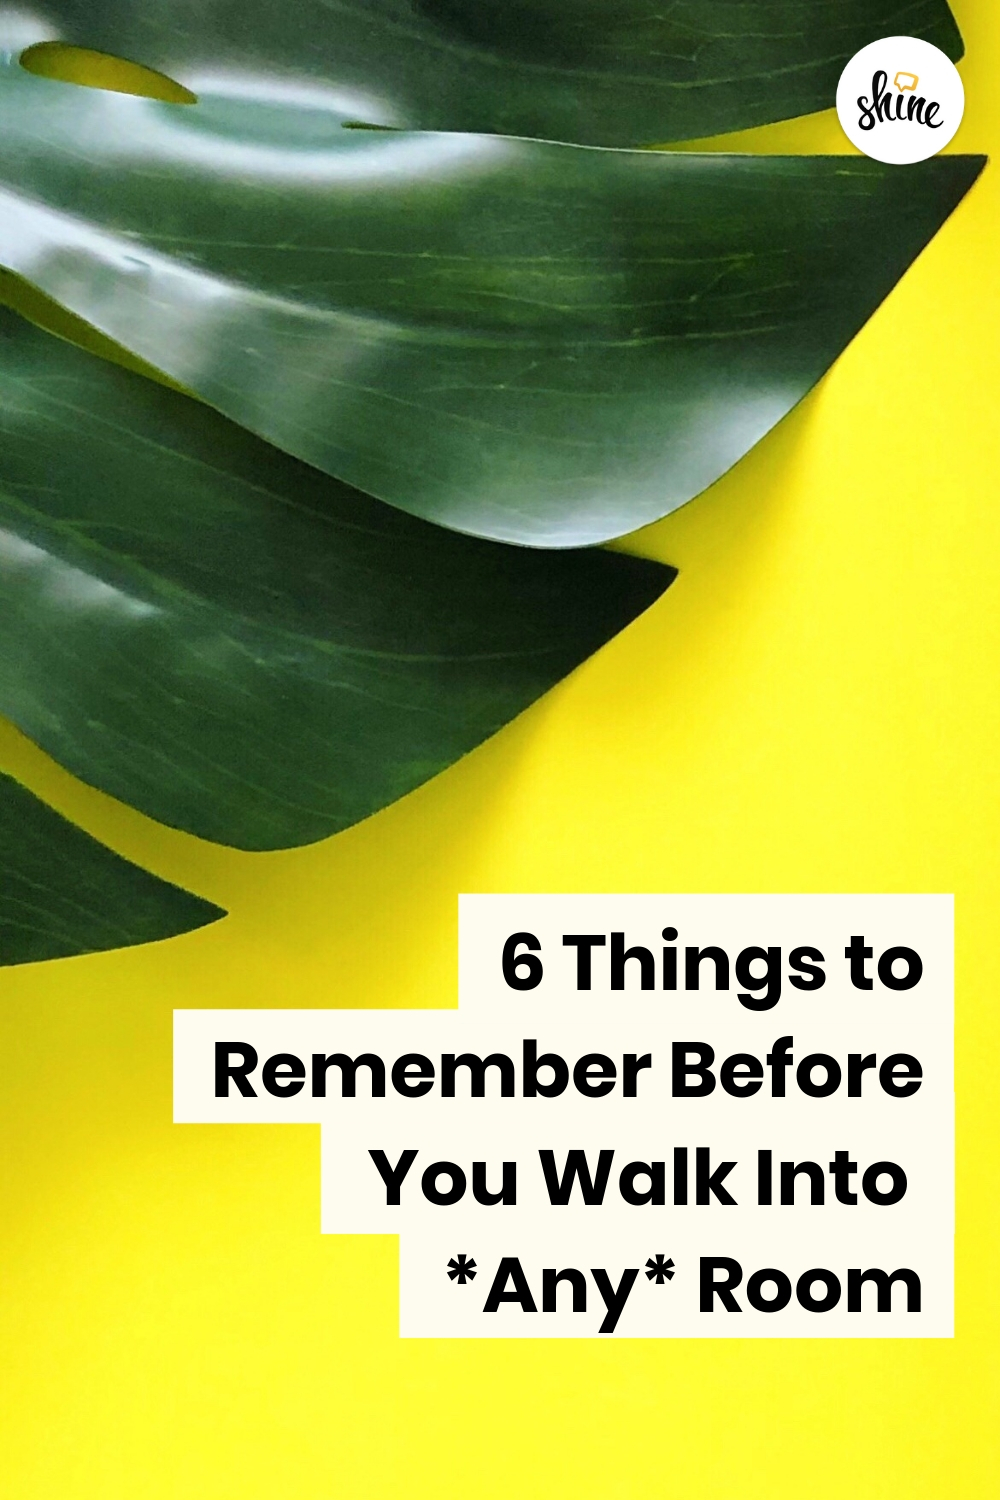 6 Things to Remember Before You Walk Into *Any* Room